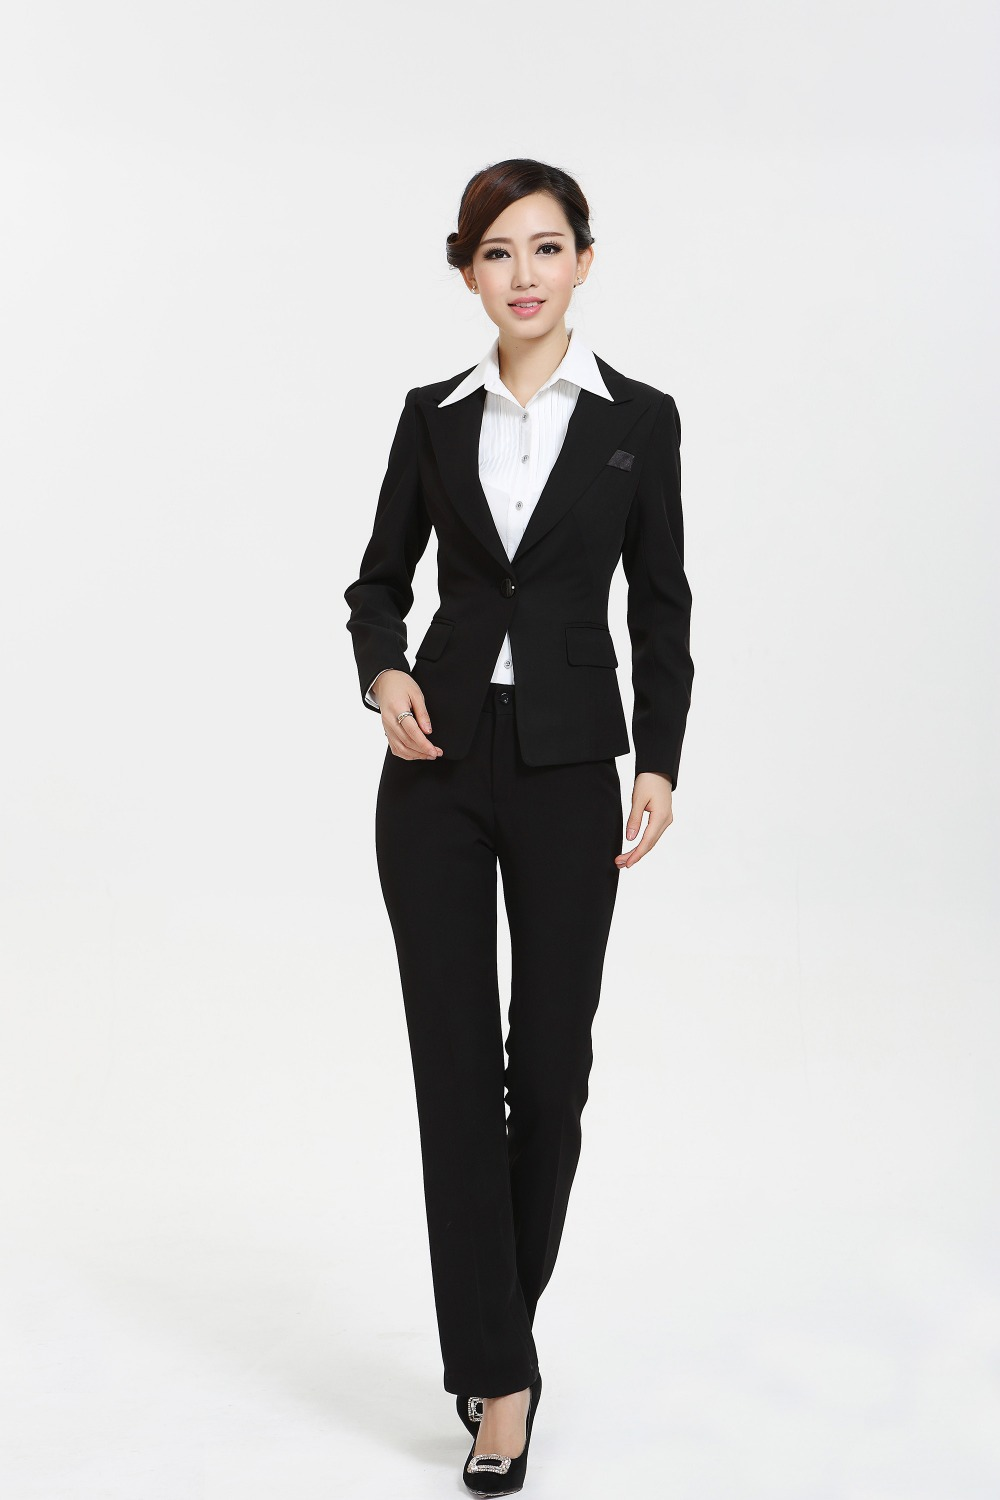 aliexpress com buy new 2015 fall winter professional business aliexpress com buy new 2015 fall winter professional business formal pantsuit ladies suits pant and jacket sets uniforms beautician set plus size from